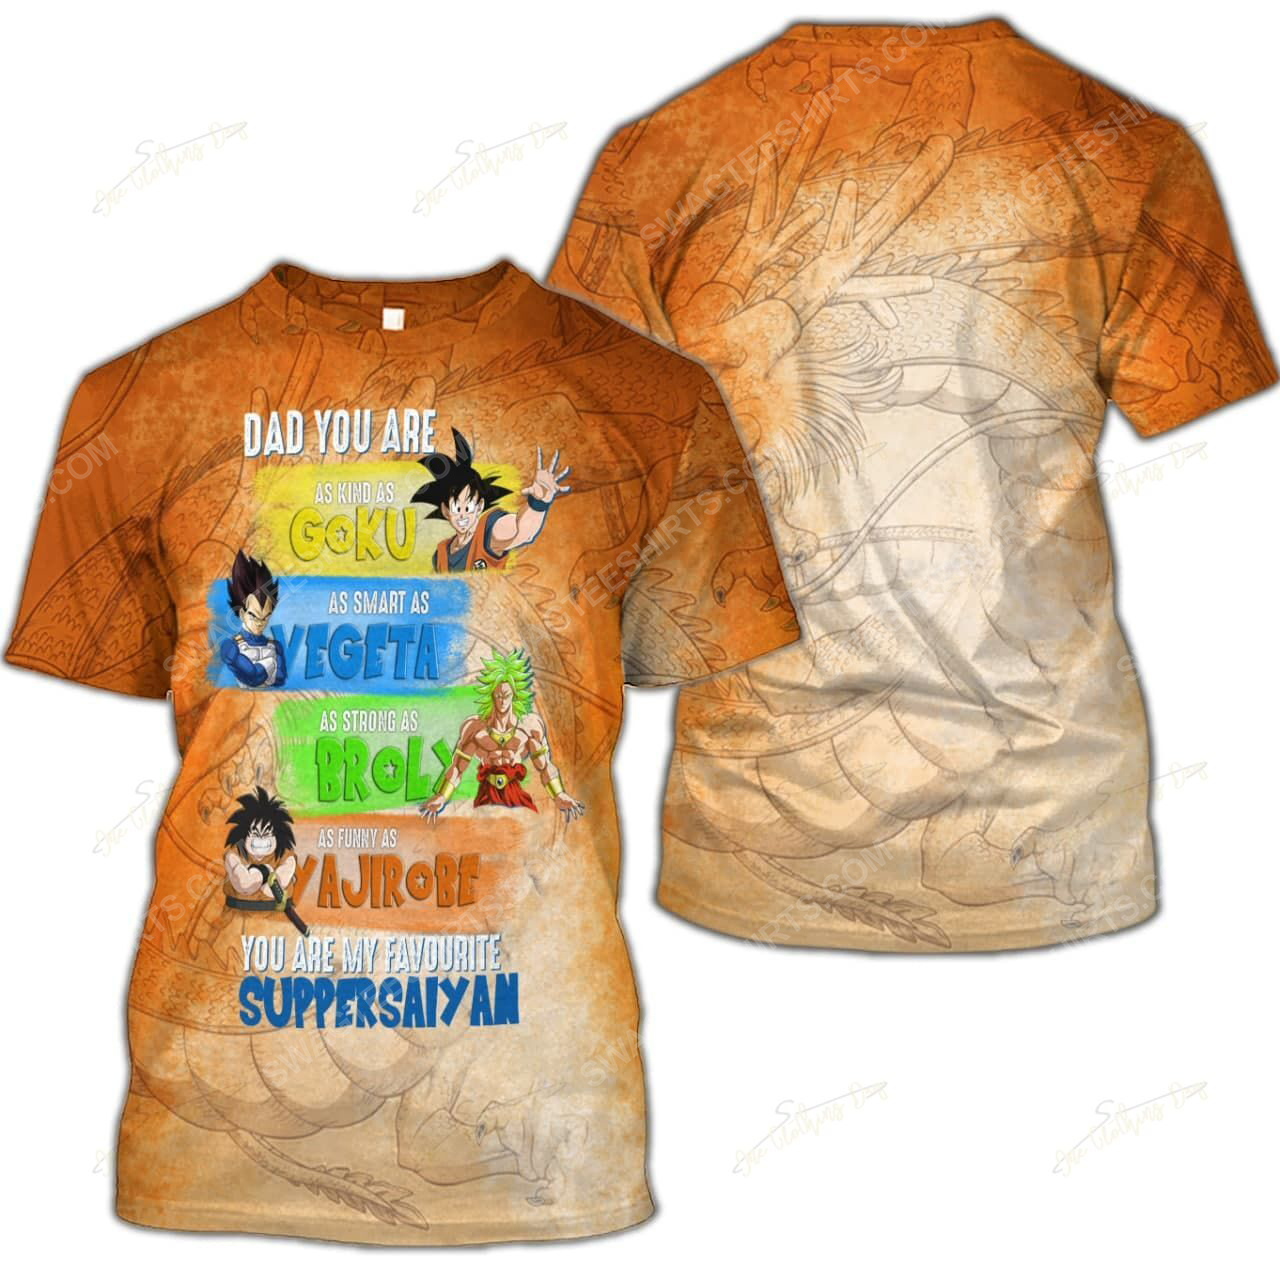 Fathers day dad you are as kind as goku dragon ball z shirt 5(1)